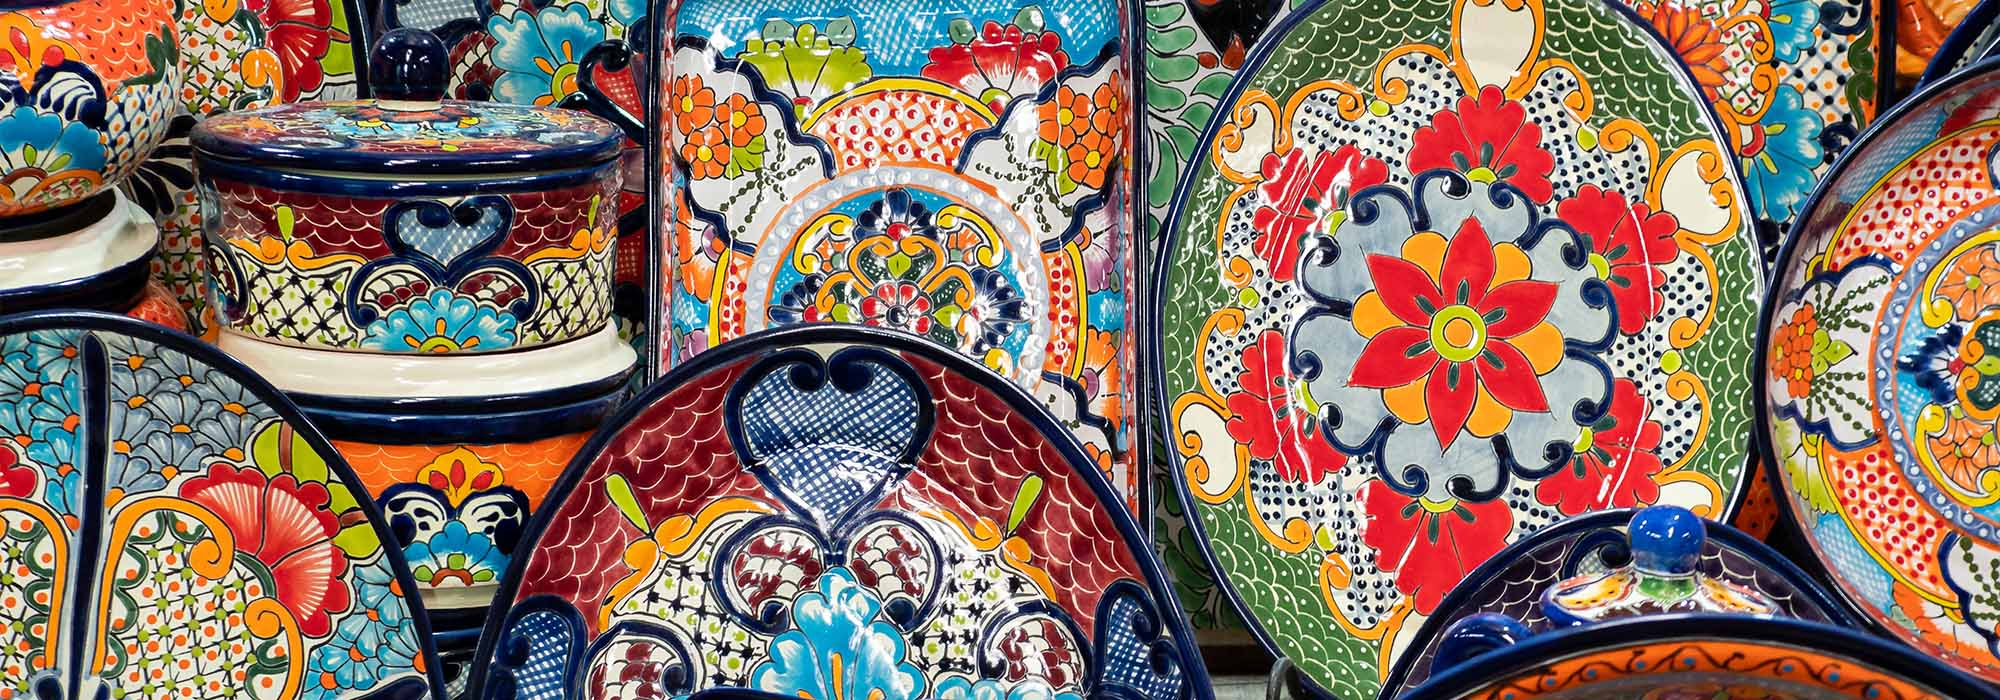 colourful plates on a stall